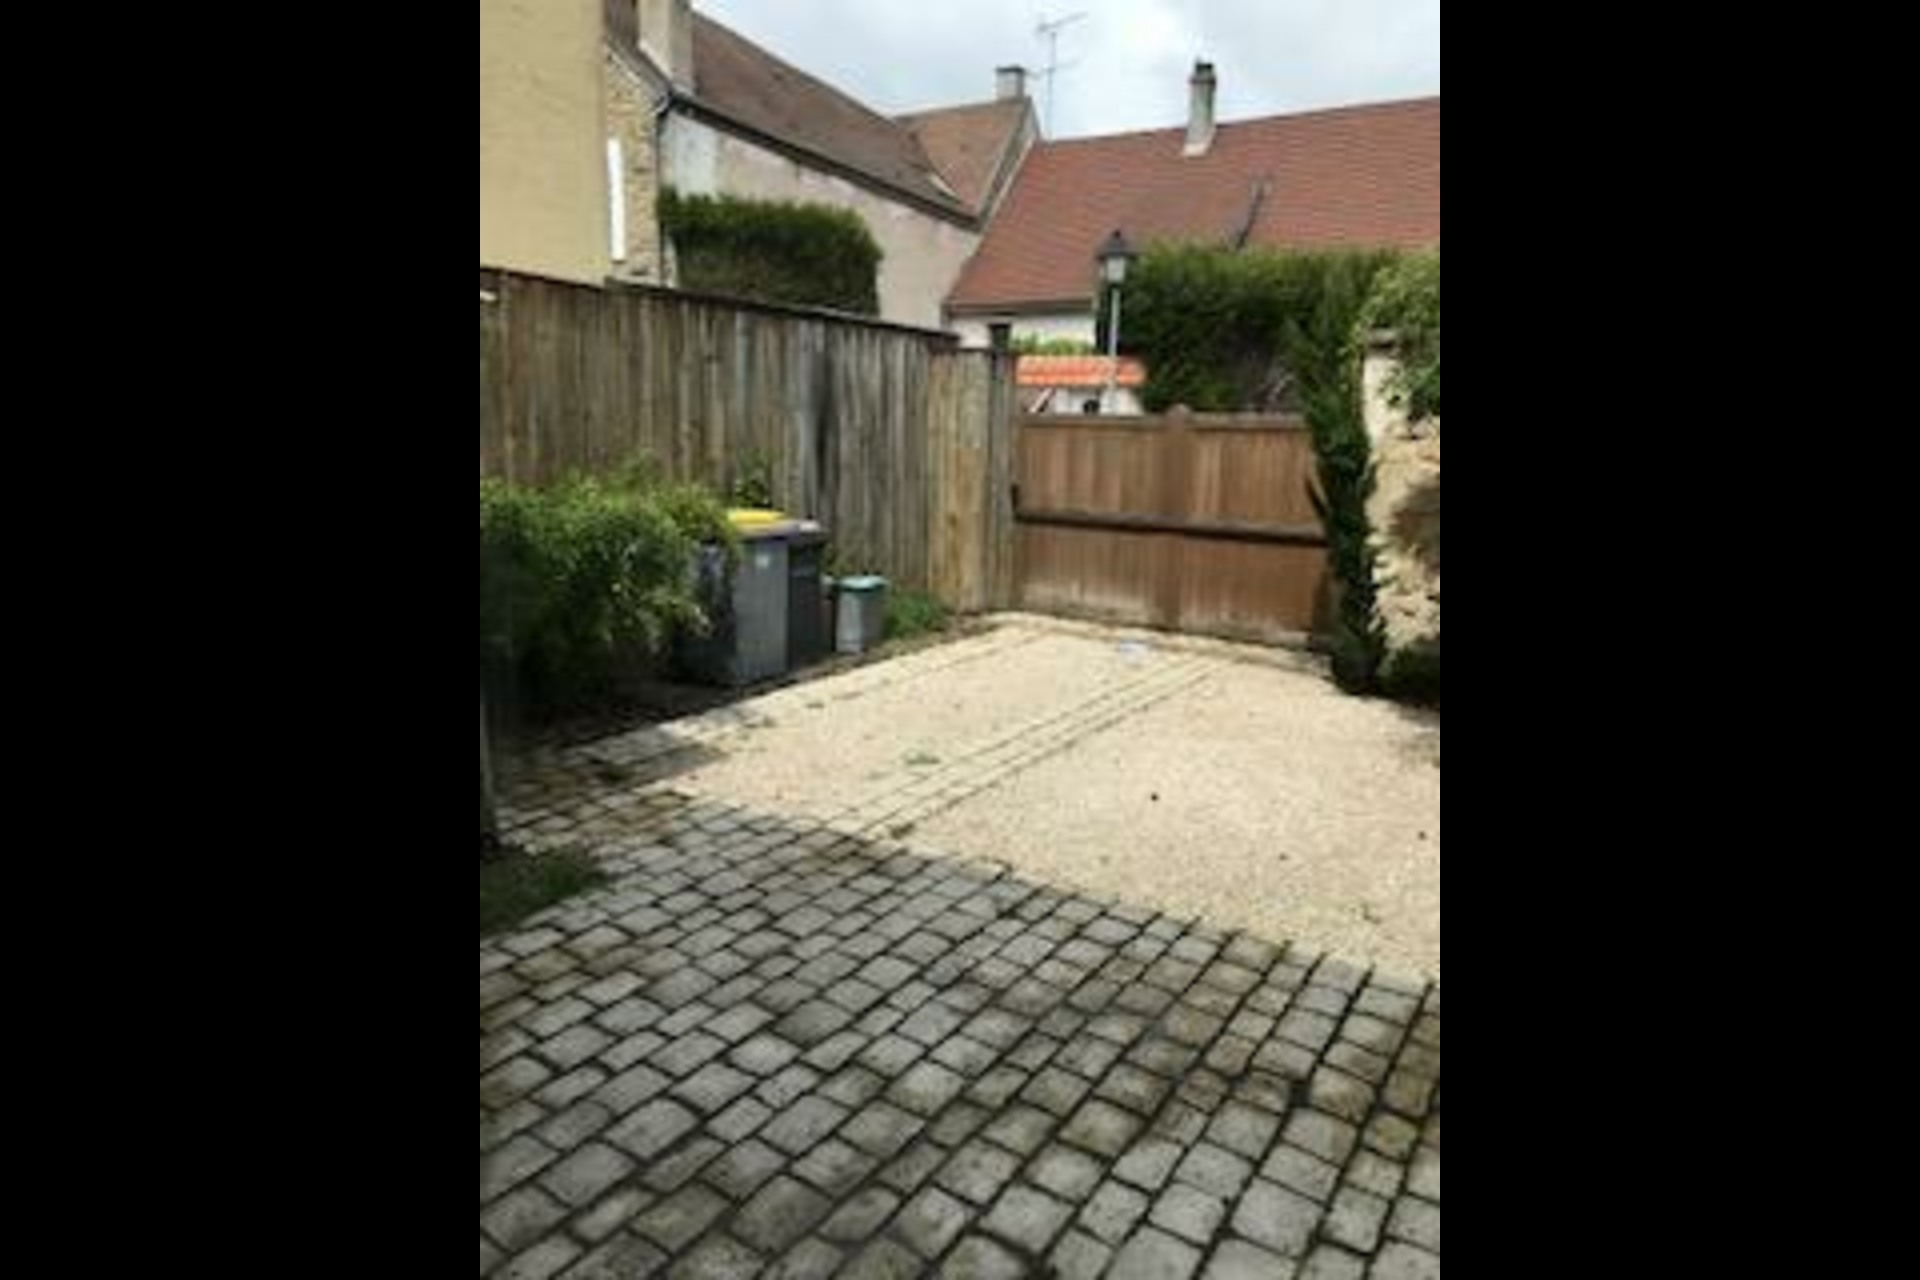 image 5 - House For sale orgeval - 6 rooms